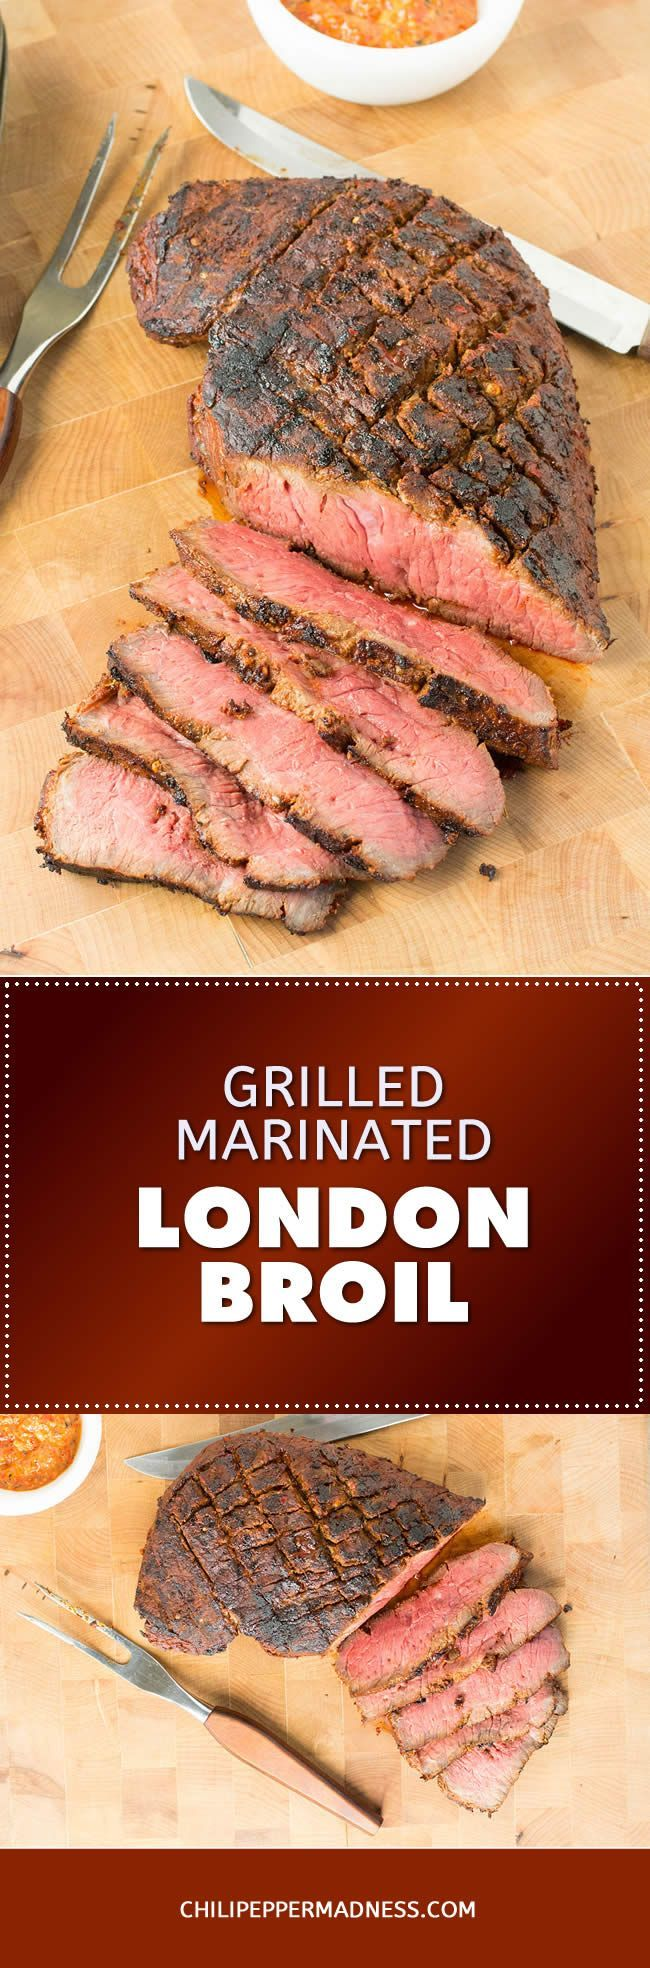 Grilled Marinated London Broil – Madness Style - A recipe for tender London Broil, marinated in a homemade spicy steak marinade with chili paste, then grilled to perfection. Slice against the grain and serve it with chimichurri. Absolutely mouthwatering on the grill.